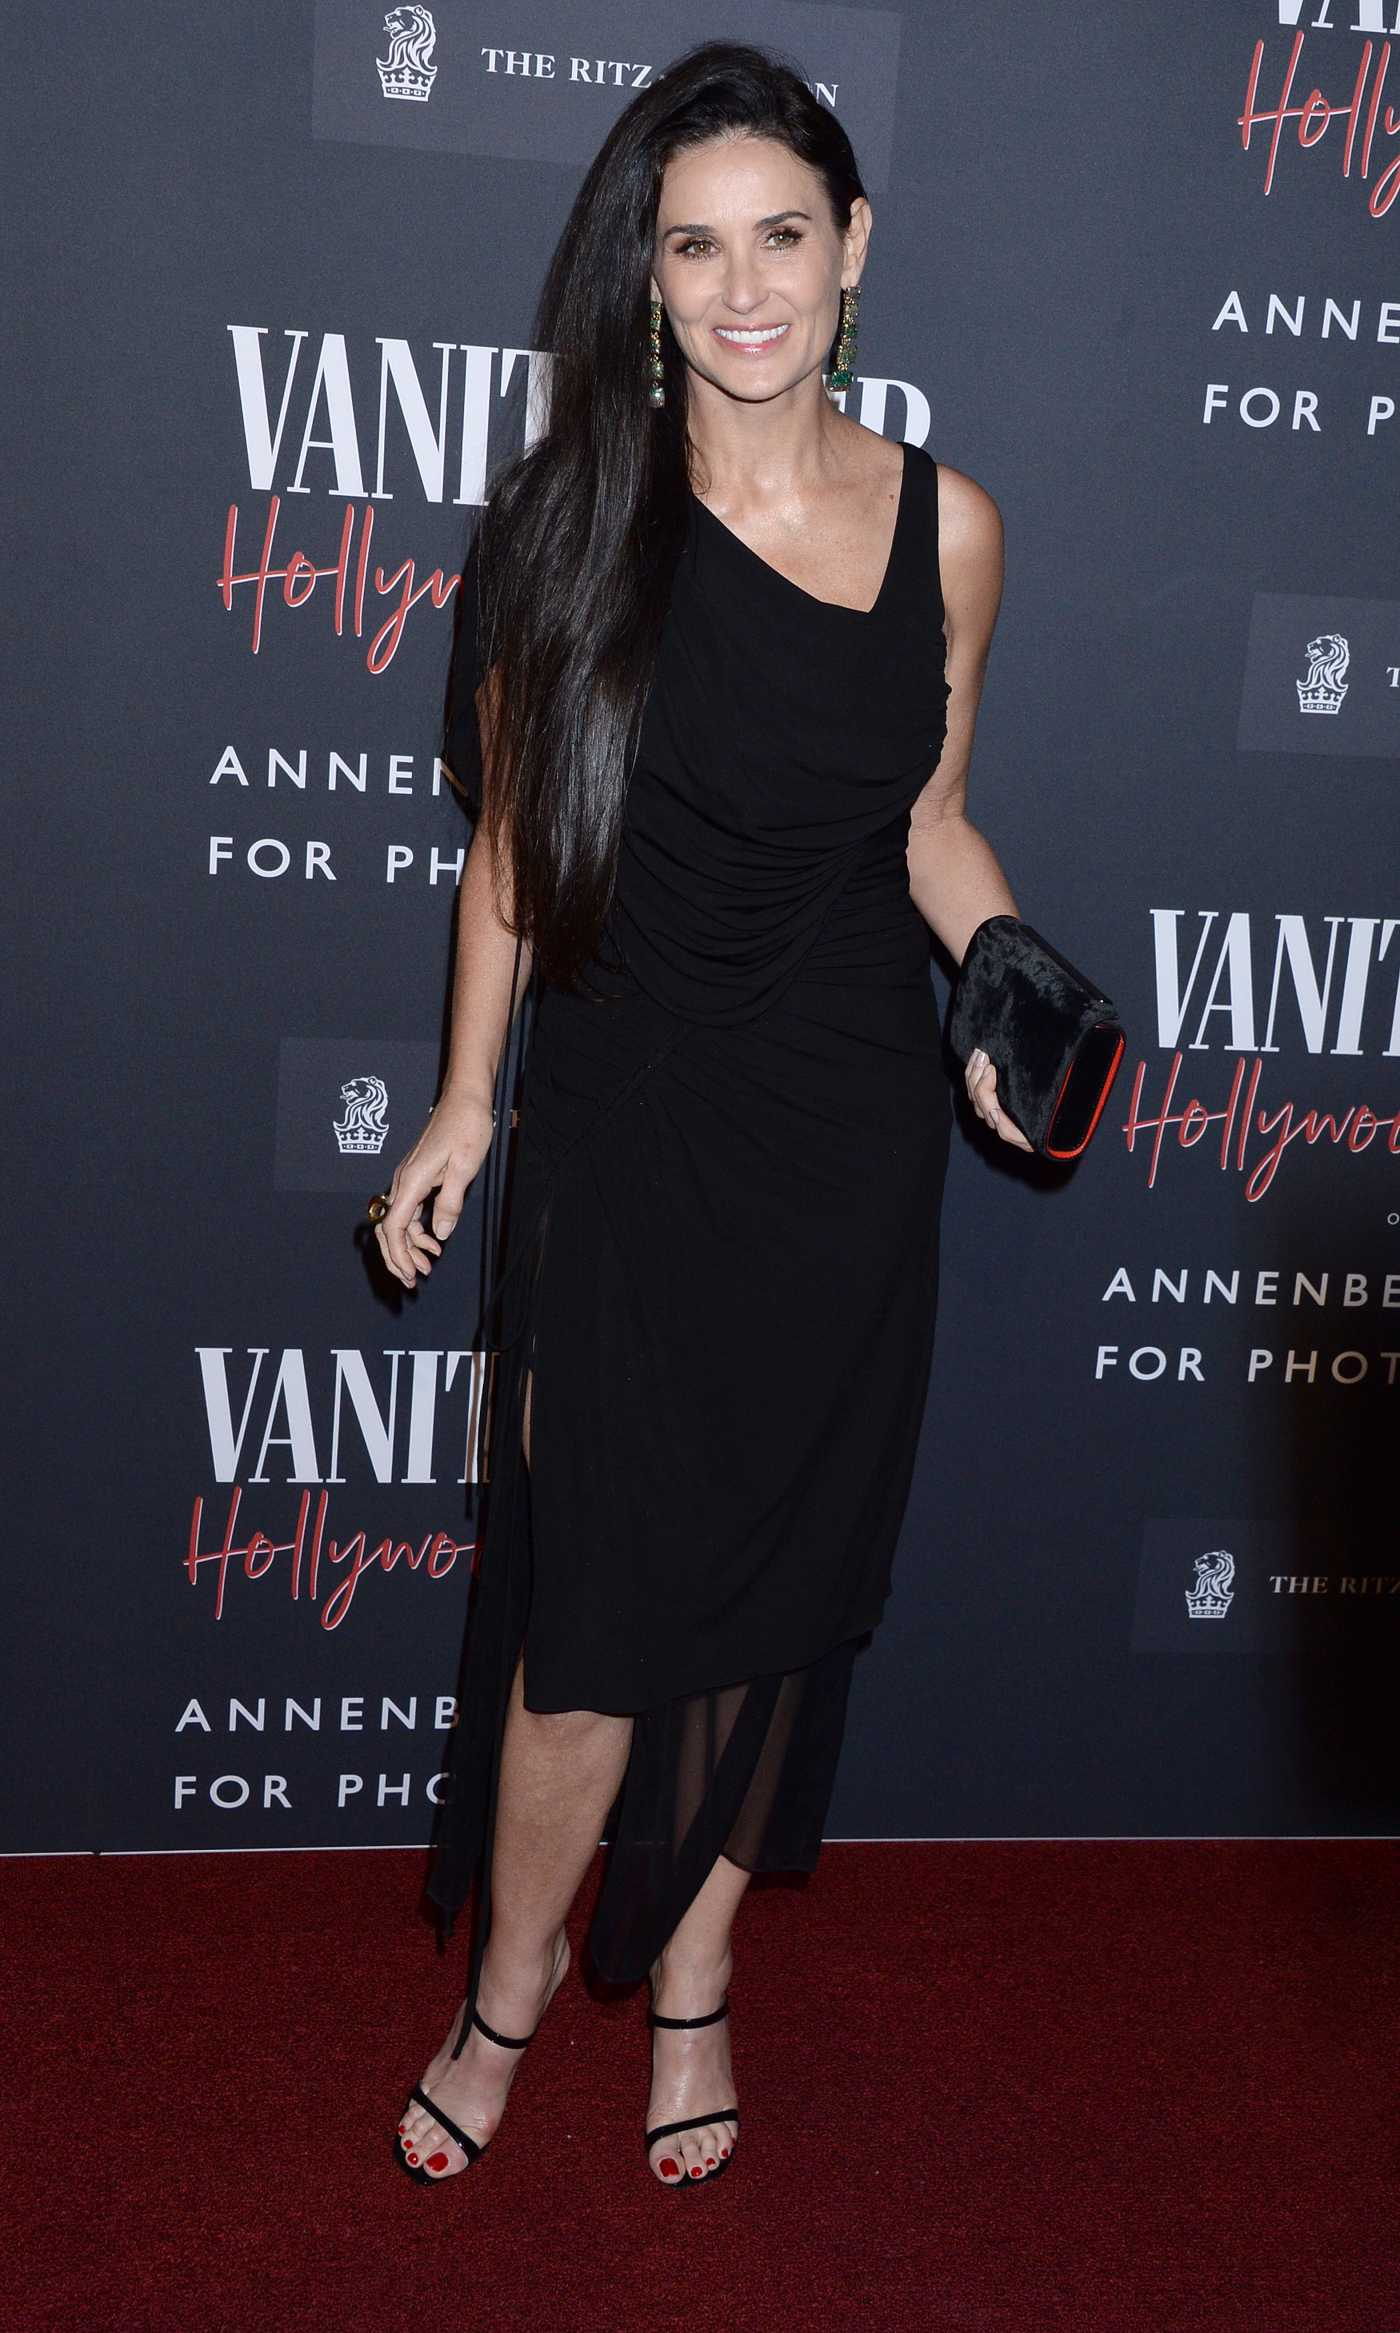 Demi Moore Attends the Vanity Fair: Hollywood Calling Exhibition in Los Angeles 02/04/2020